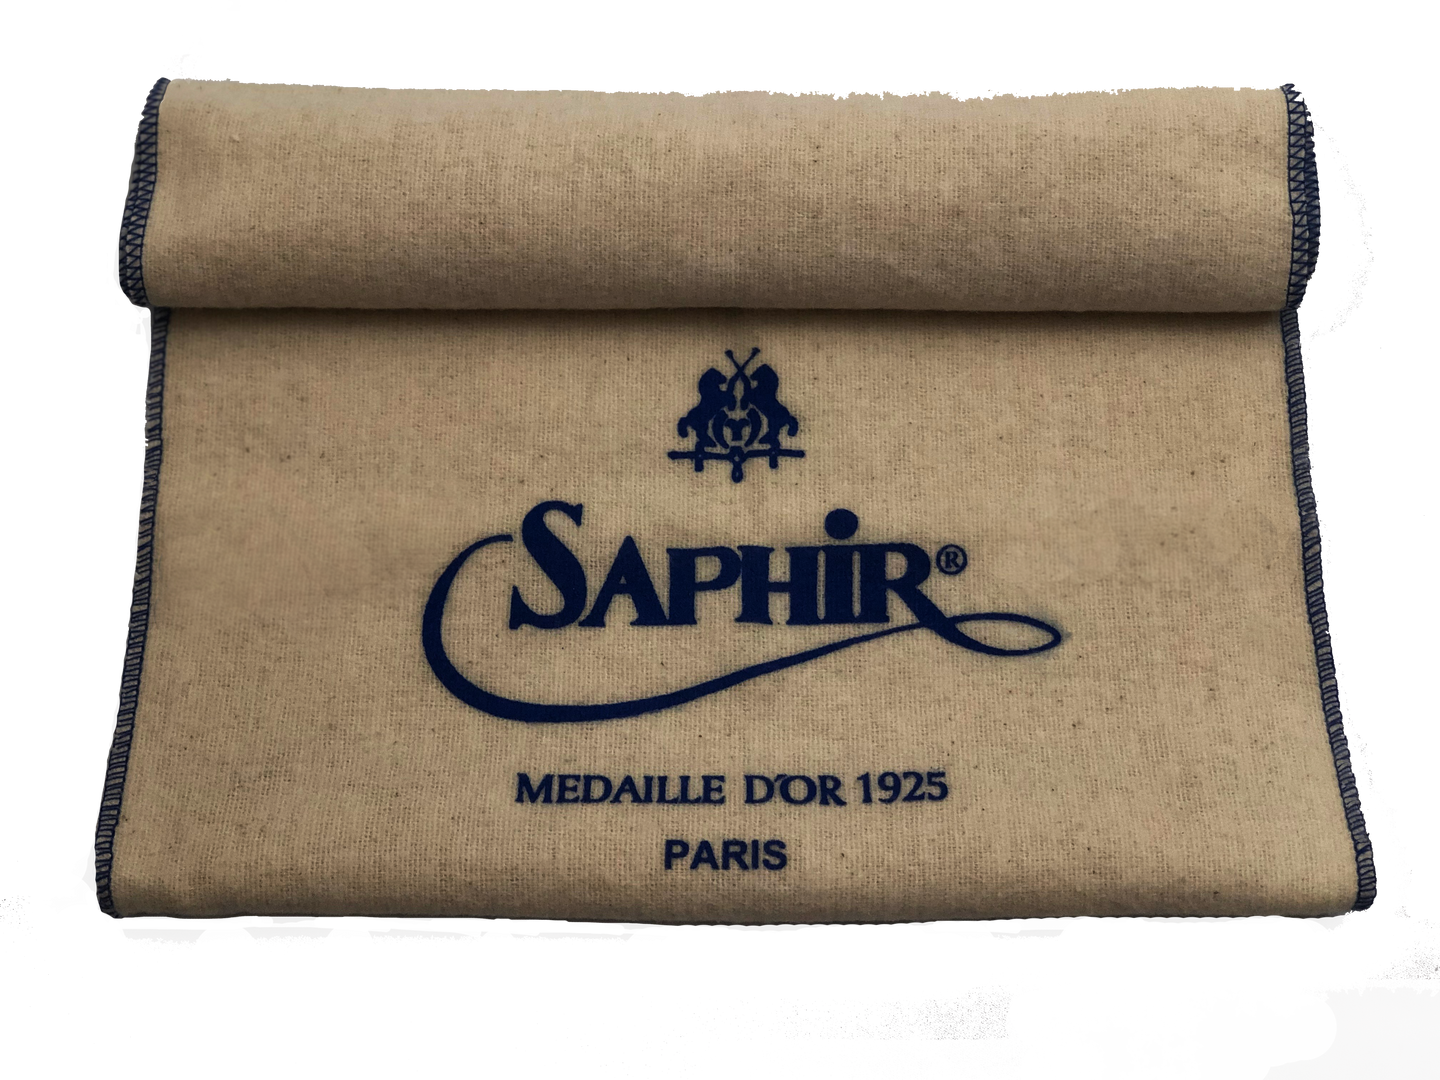 Saphir Medaille d'Or Rectangle Cotton Cloth - Vikk & Co.